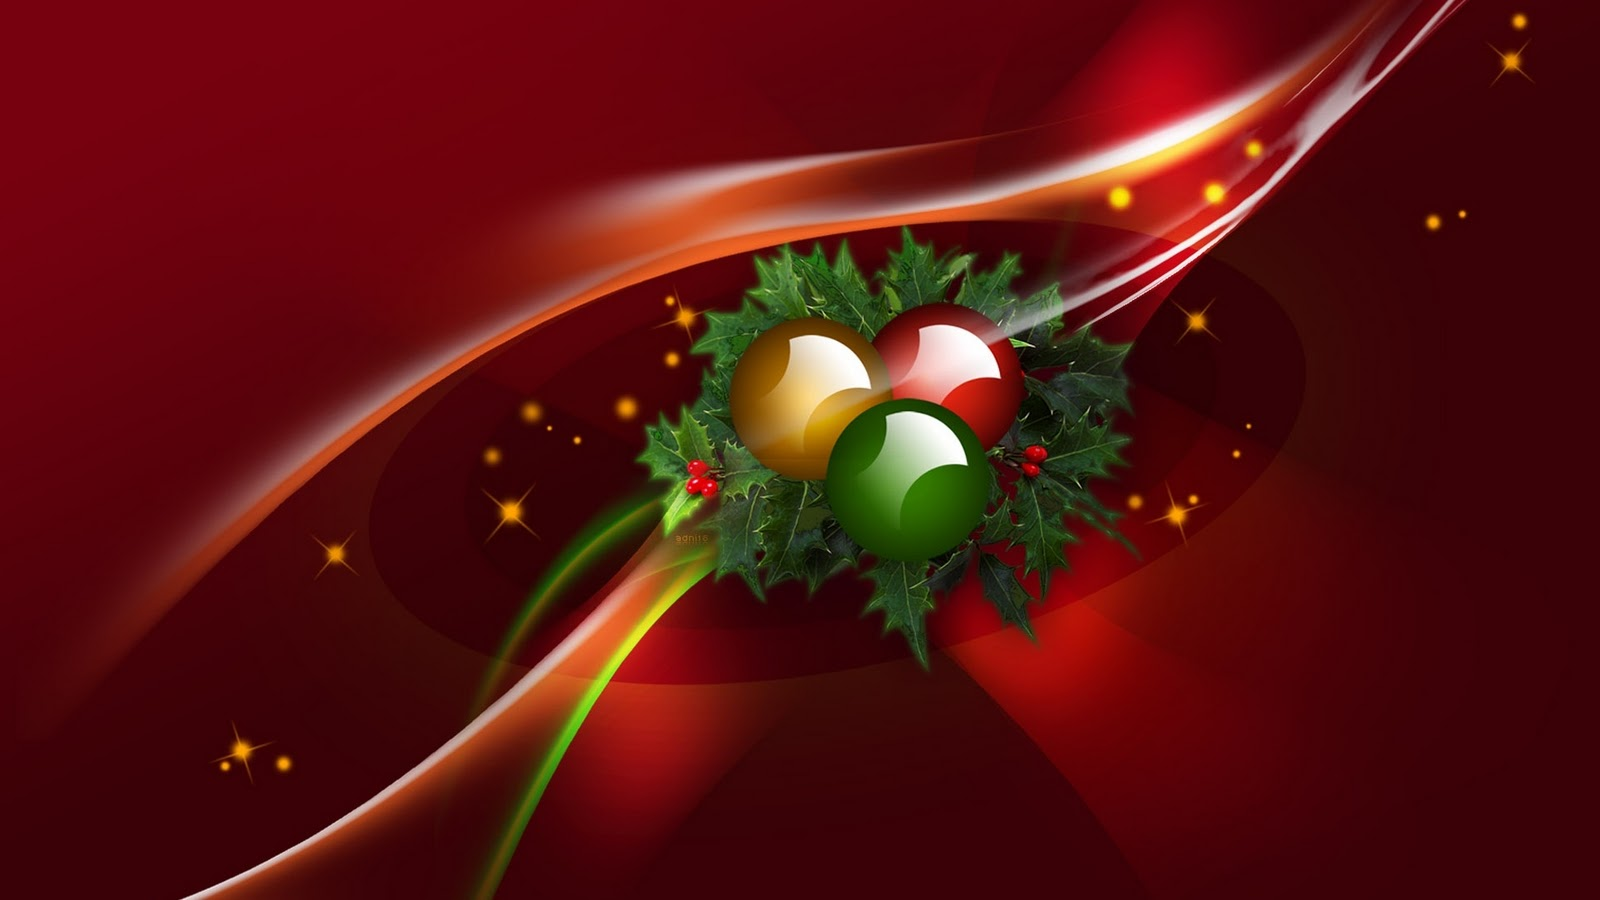 Top Hd Christmas Cards Wallpaper: Free Desktop Background Wallpapers